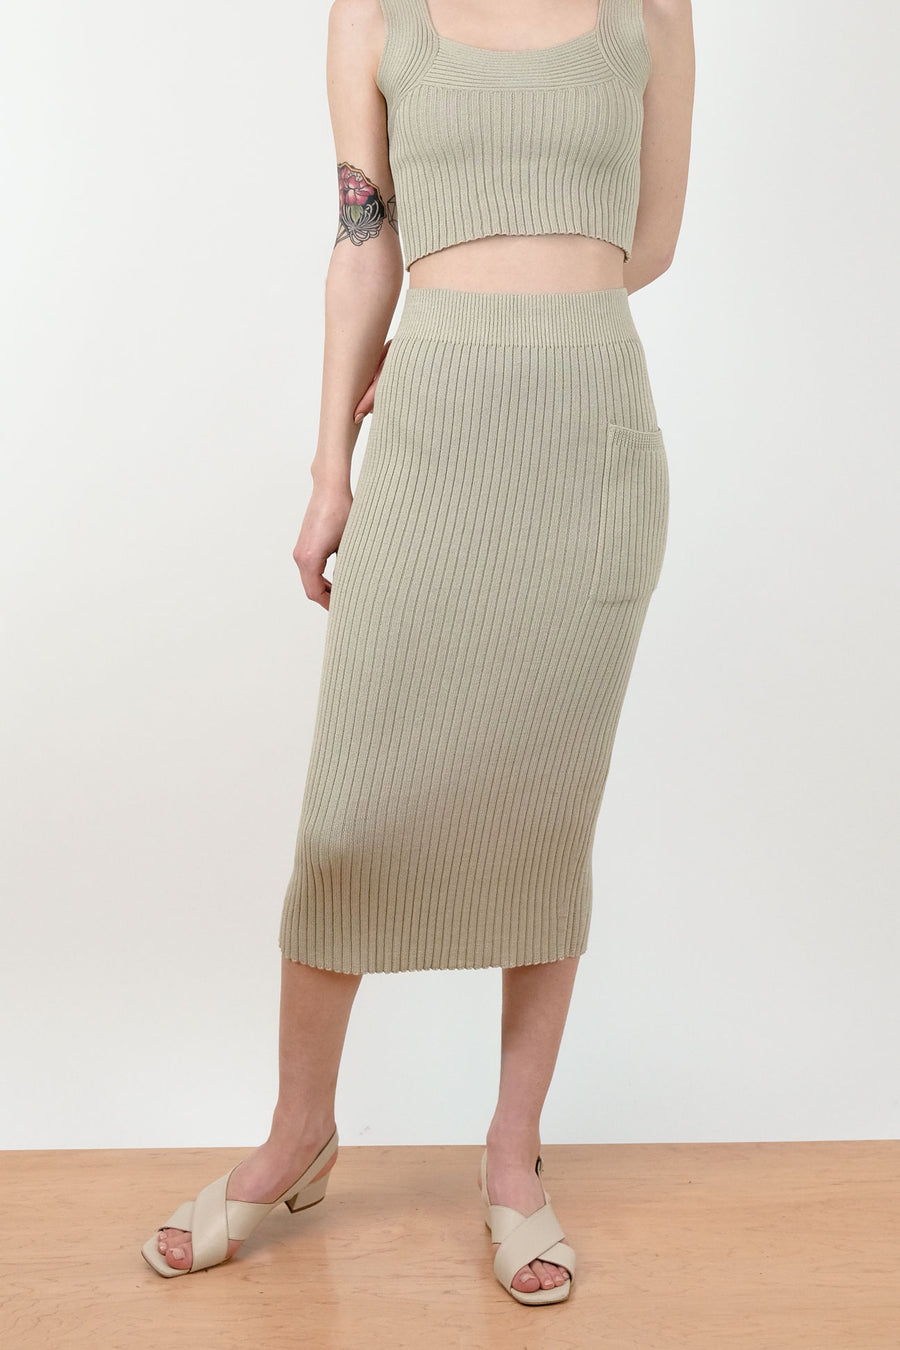 Aloe Rae Rib Skirt